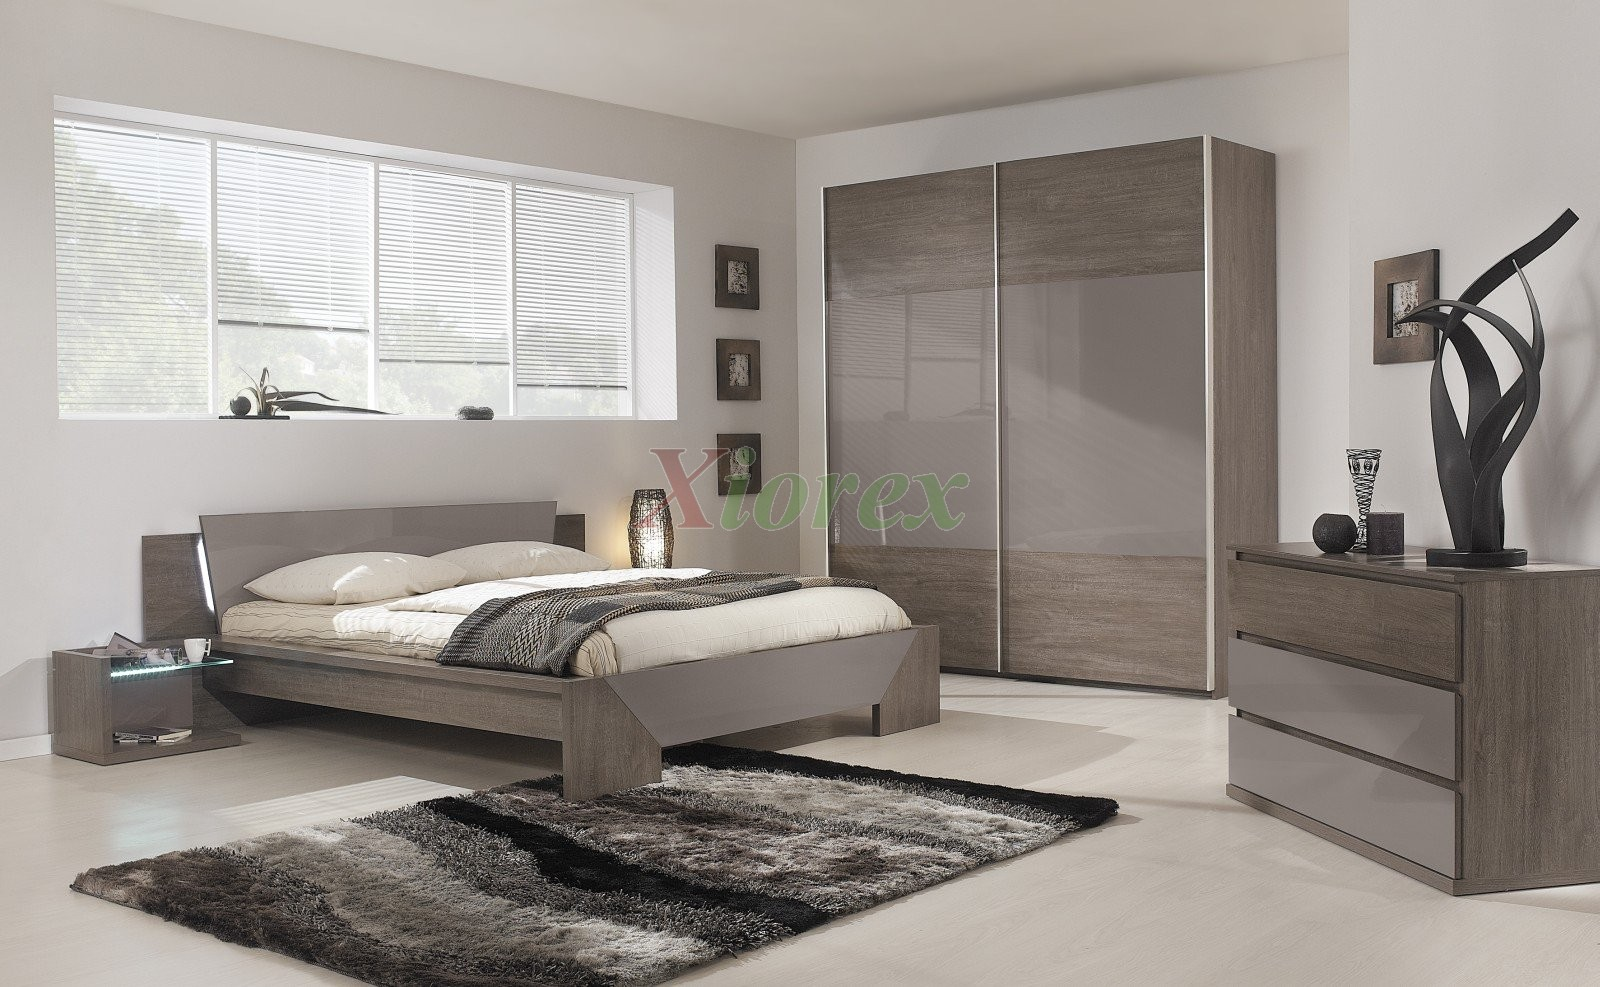 Modern bed gami trapeze bed set modern bedroom set by for New bedroom furniture